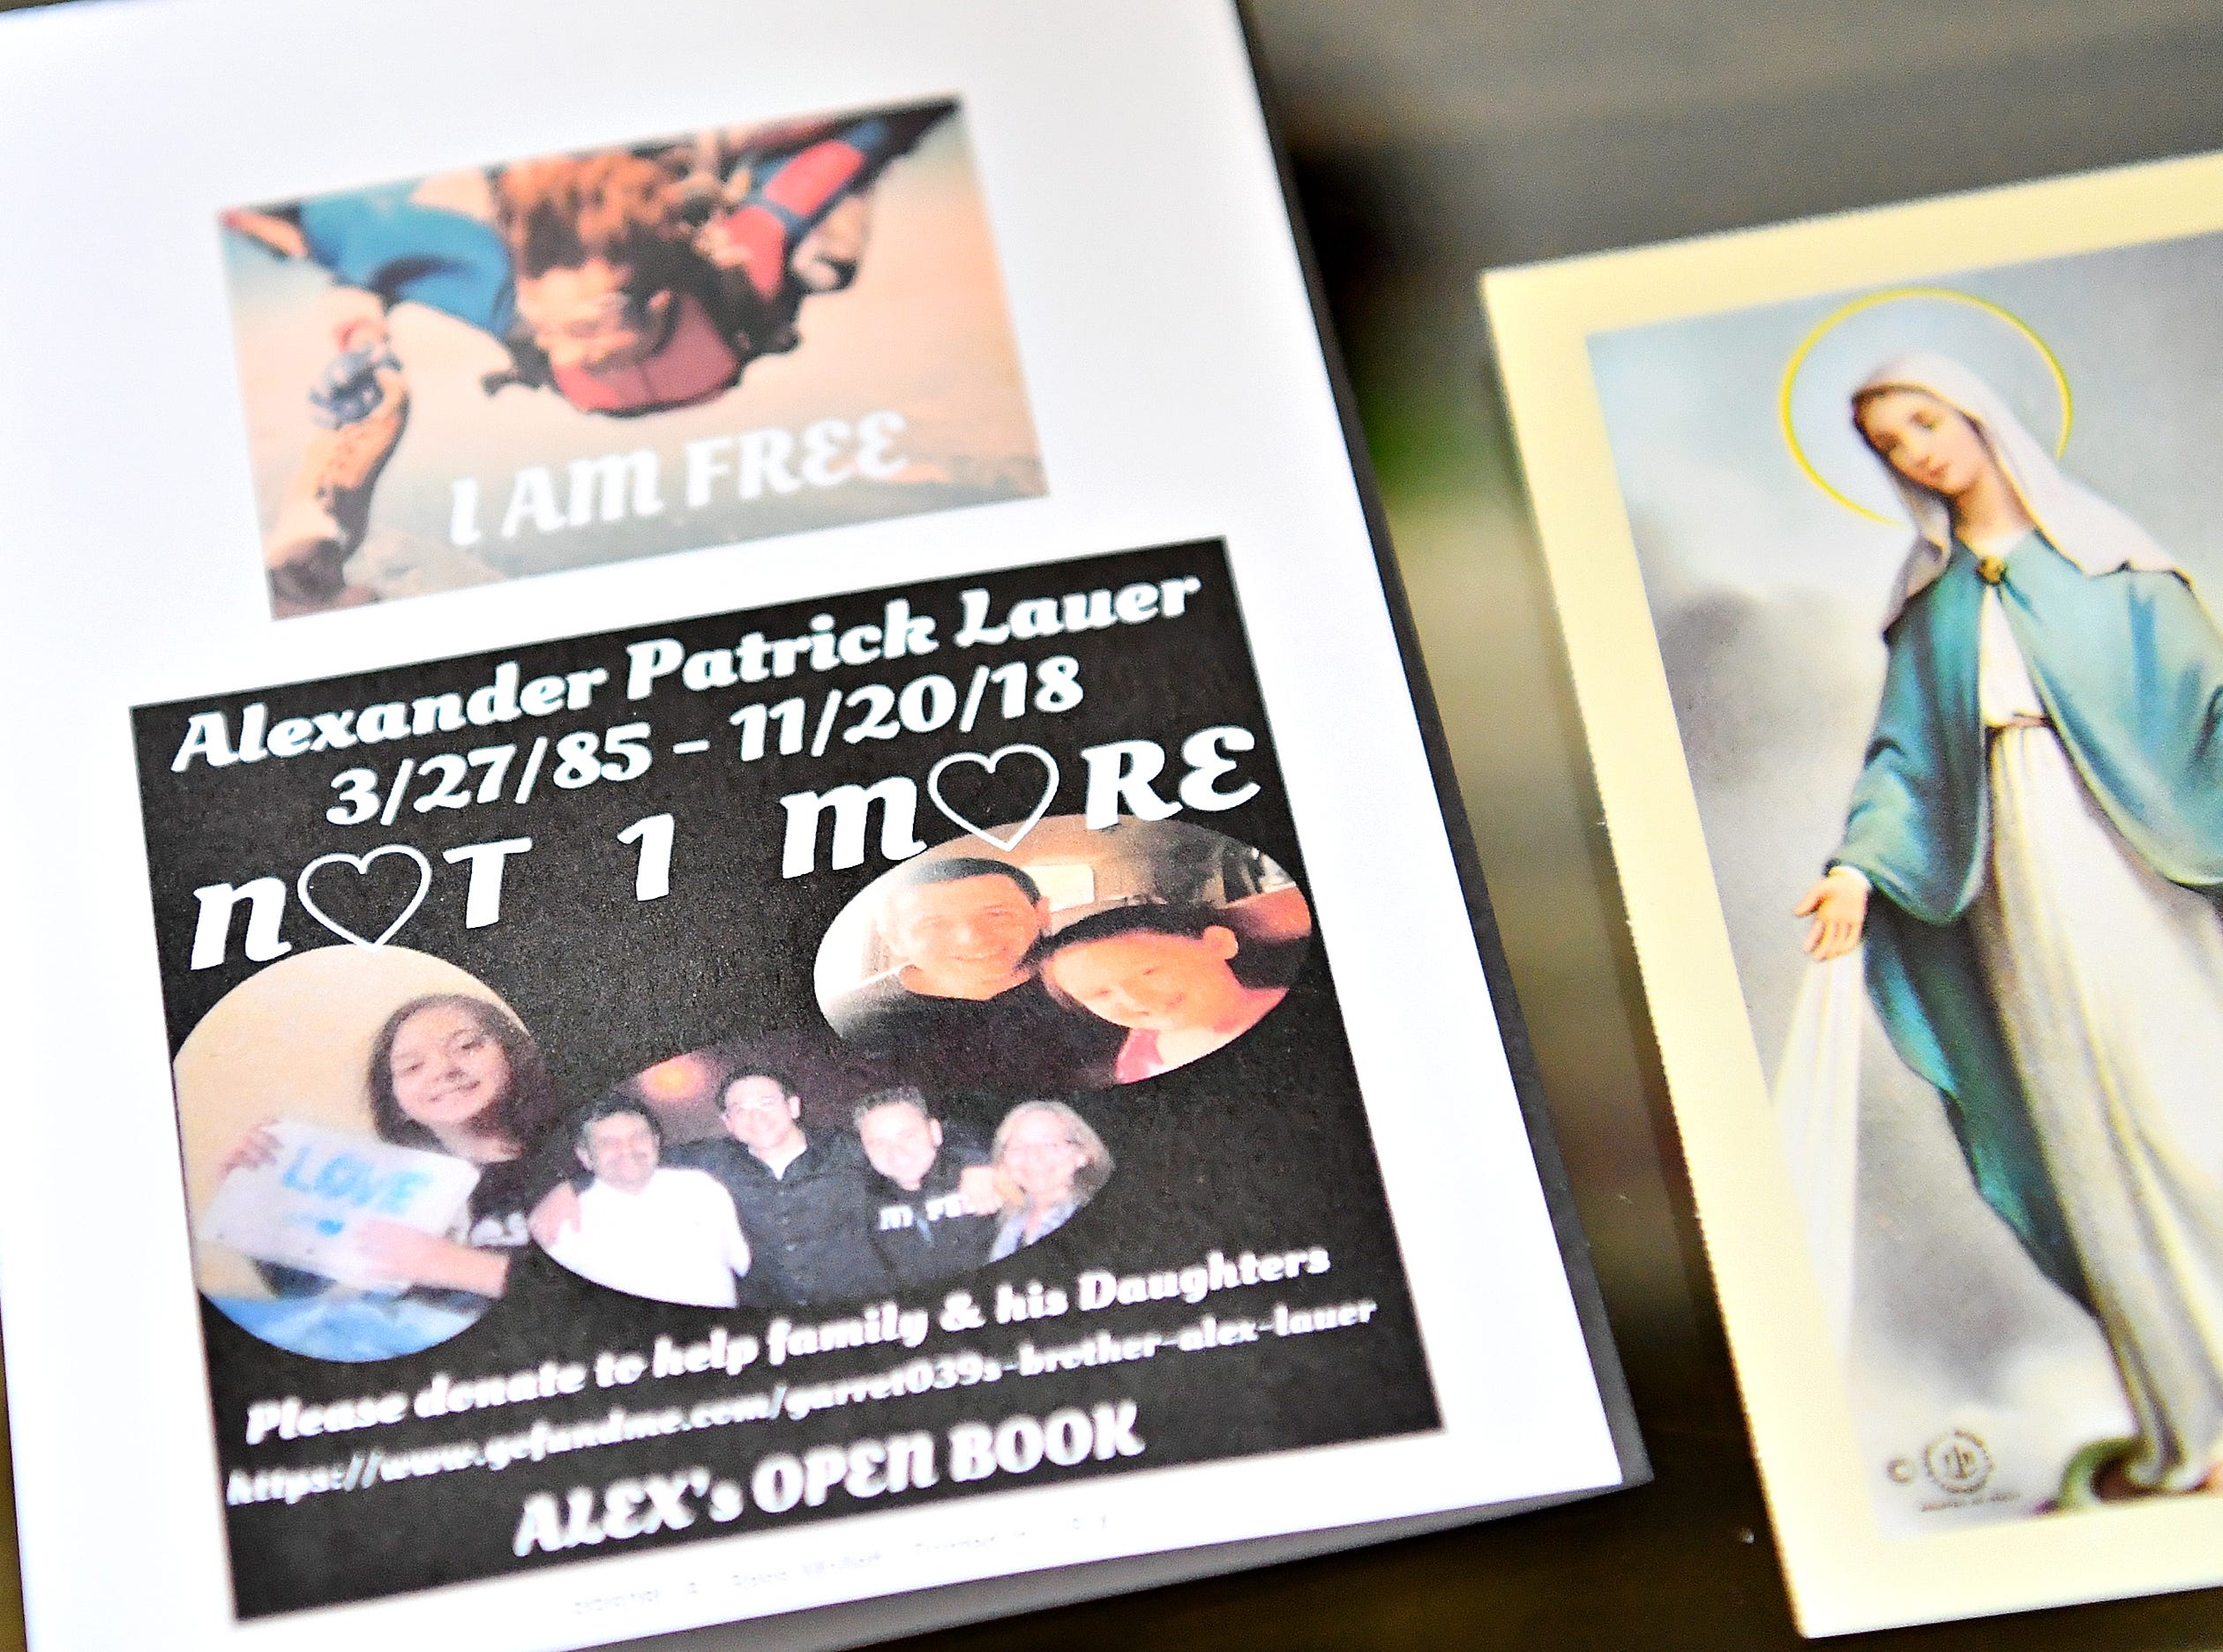 The Lauer family looks through photo albums, journals and a plethora of notes and other research materials at their home in York Township, Tuesday, Dec. 4, 2018. The materials belonged to Alexander Lauer, 33, who lost his decade-long battle with heroin unexpectedly on Nov. 20., just one week after being released from York Hospital for drug treatment. Dawn J. Sagert photo